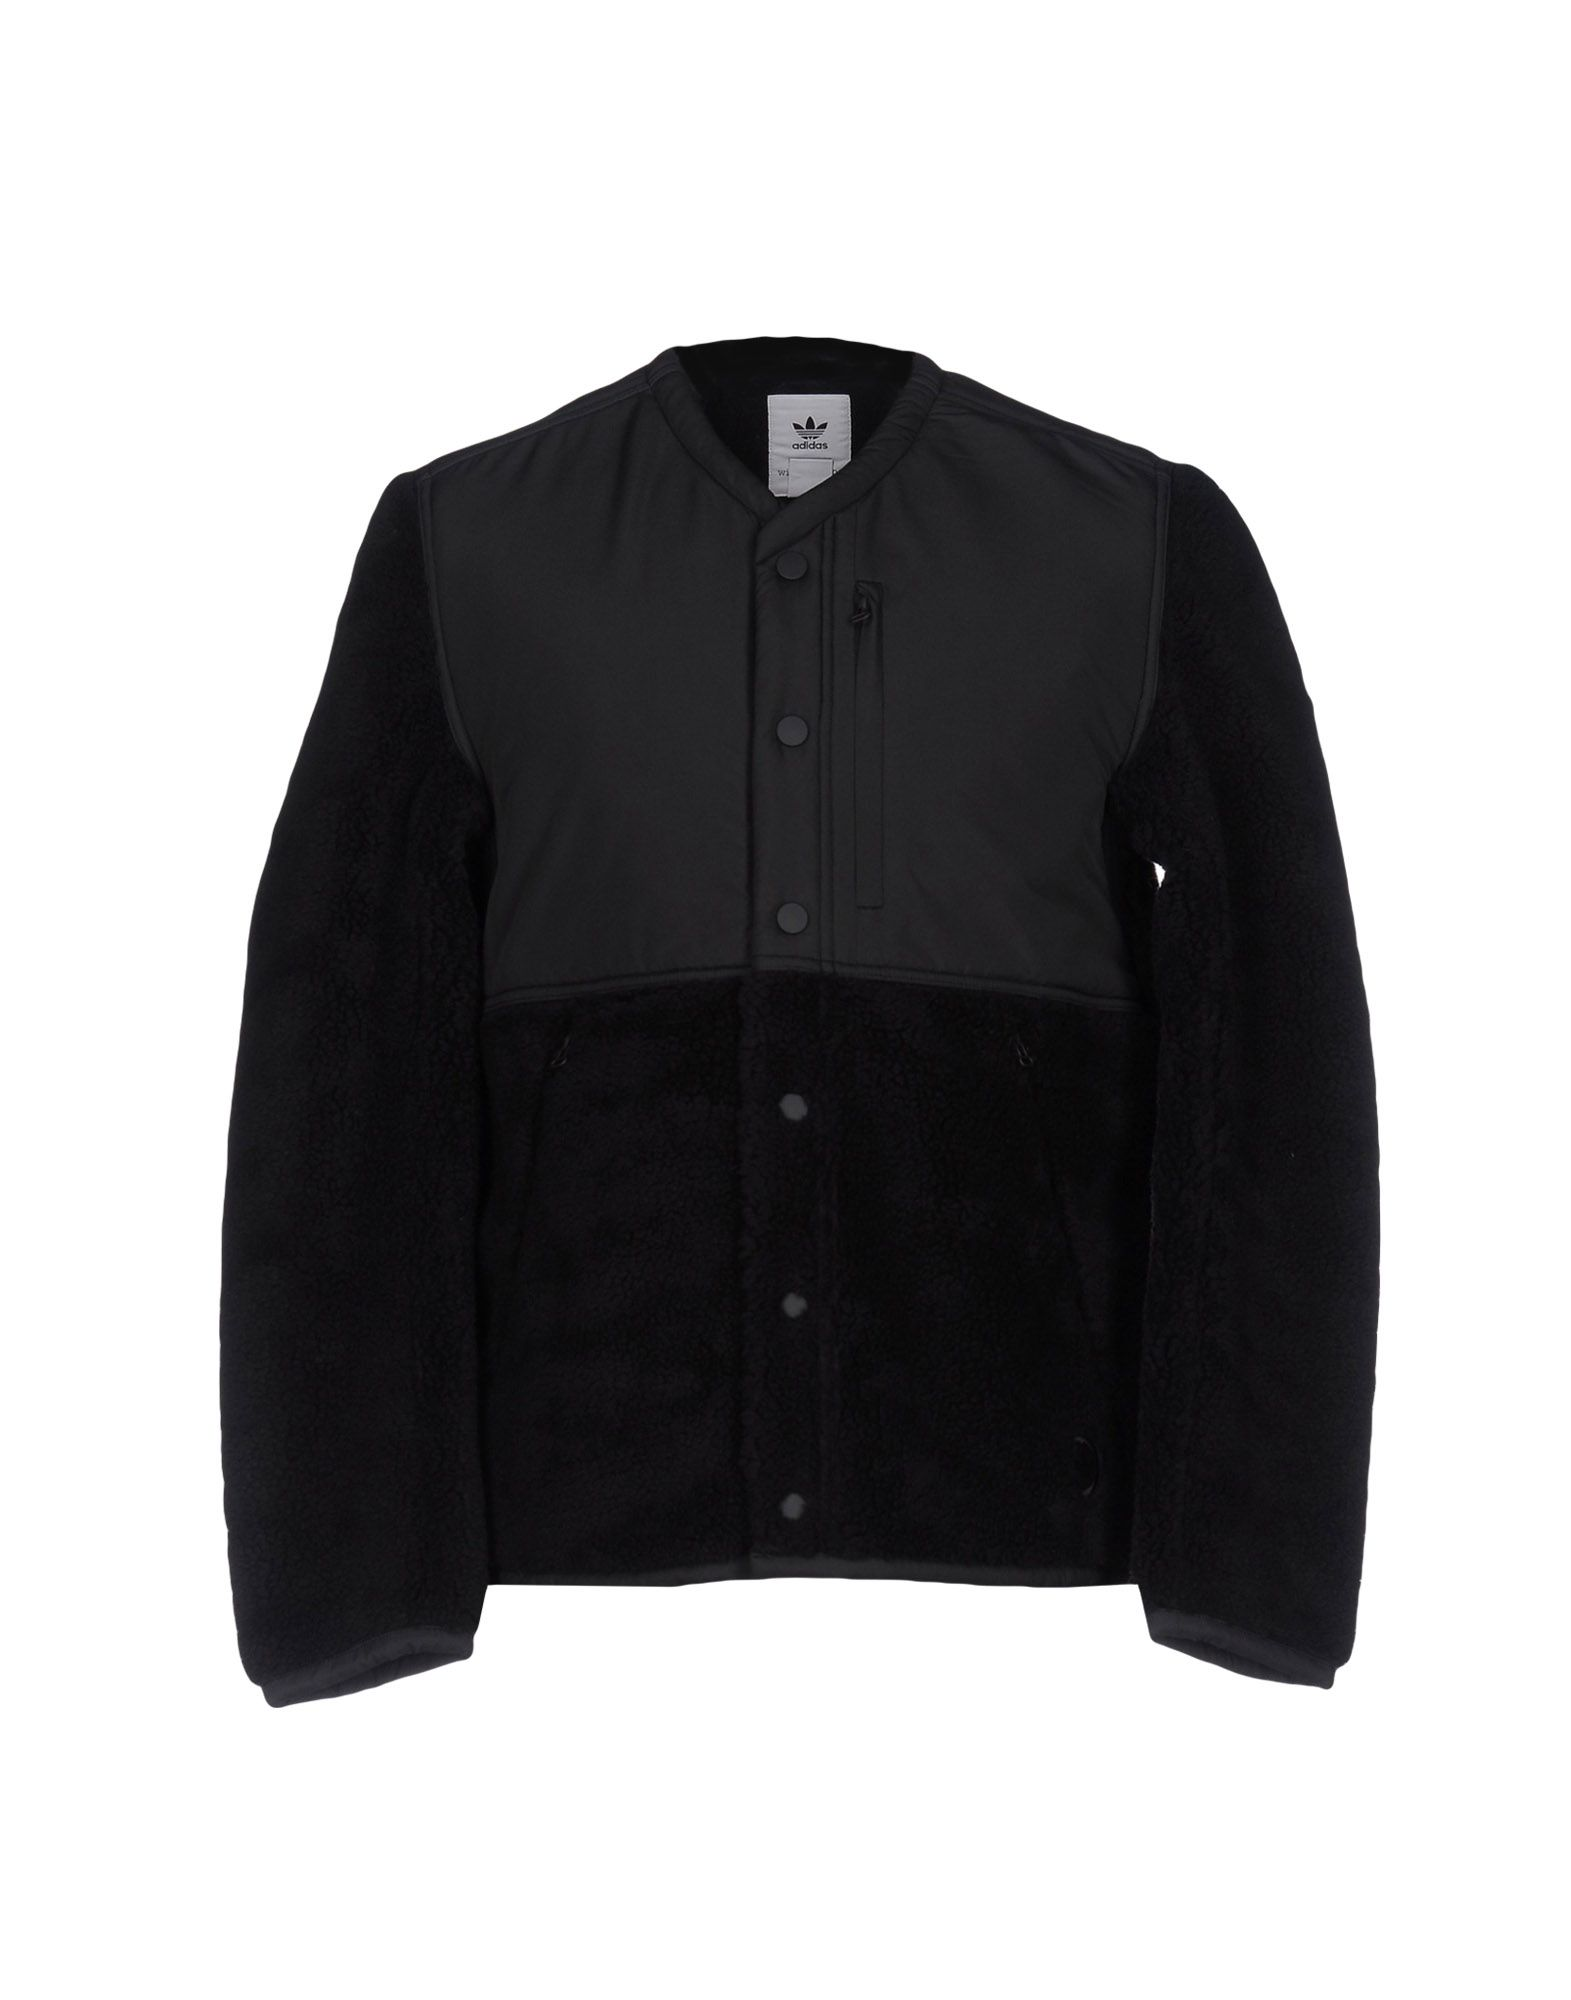 ADIDAS BY WINGS + HORNS Jackets in Black